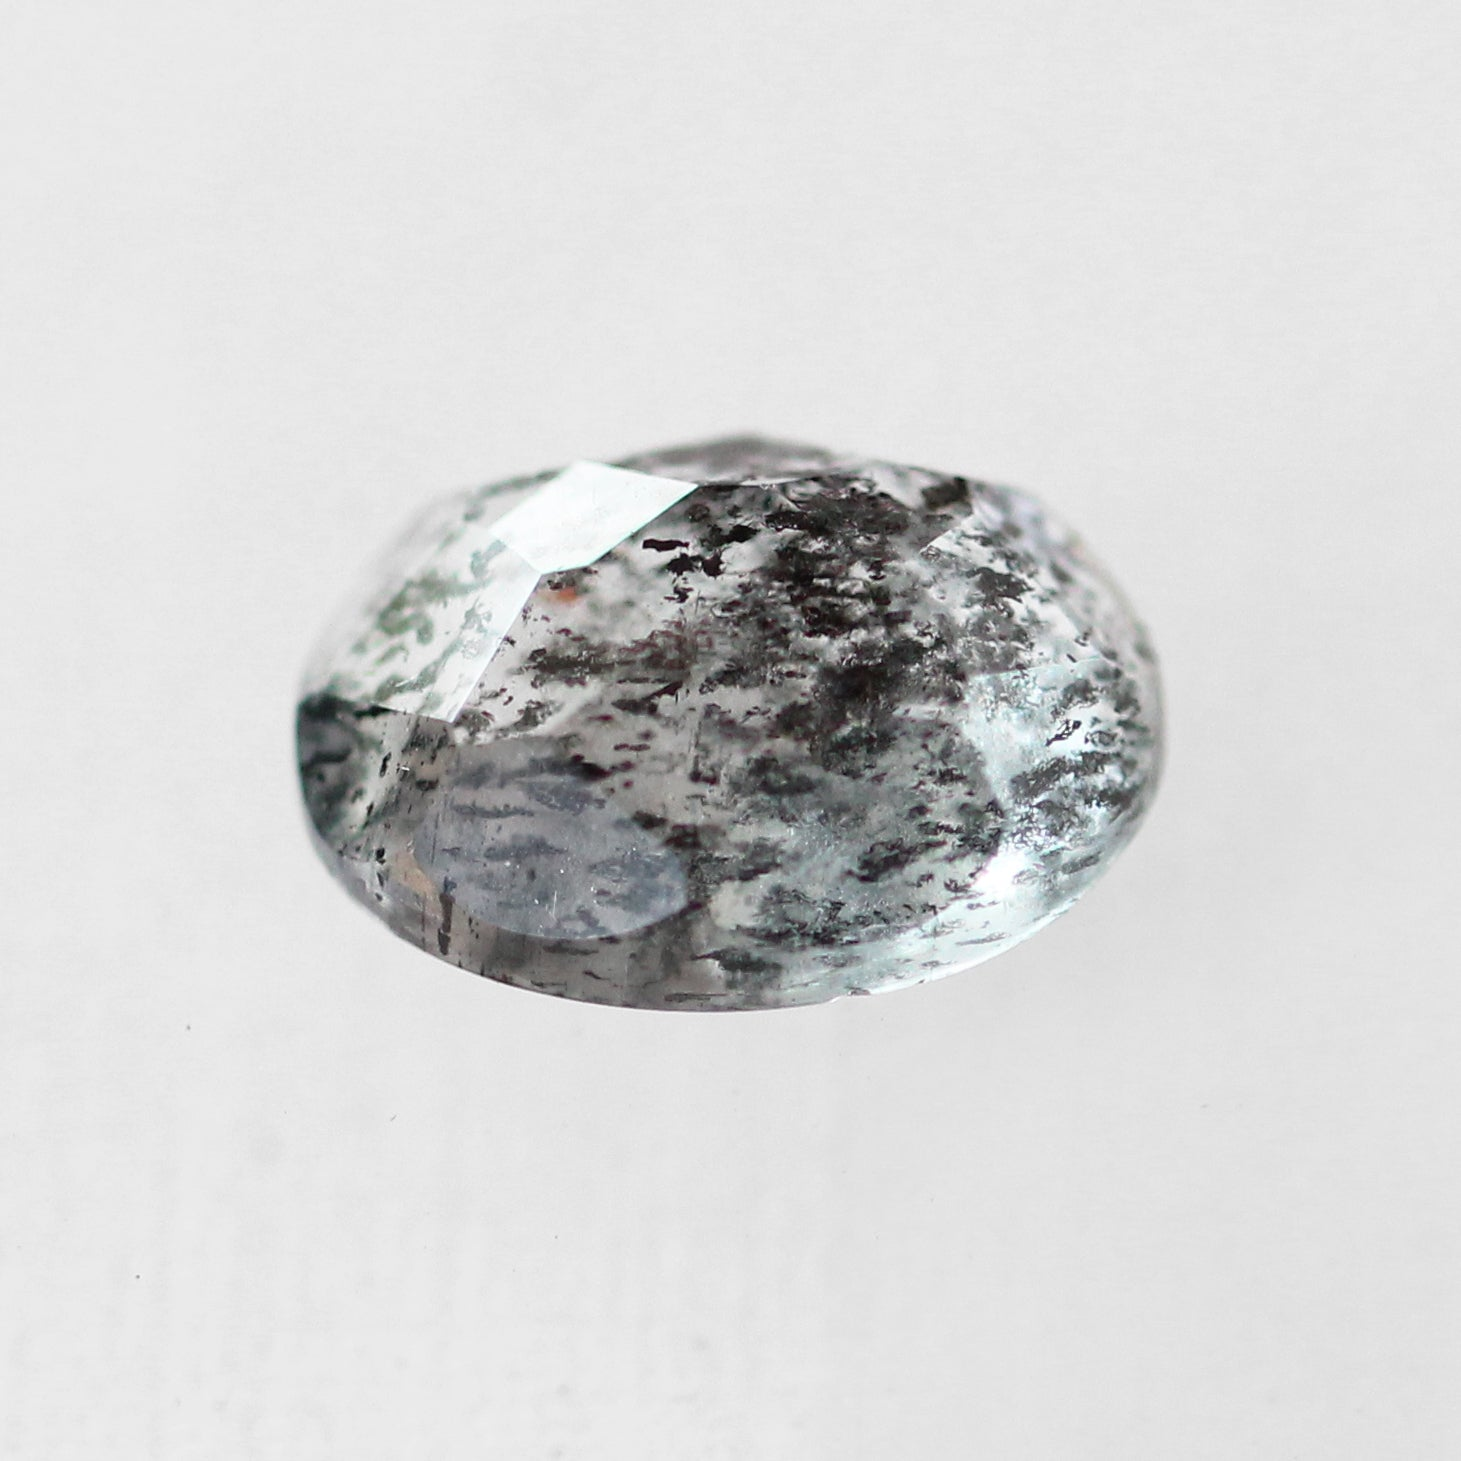 2.71 Carat Oval Moss Aquamarine- Inventory Code ORMA271 - Celestial Diamonds ® by Midwinter Co.